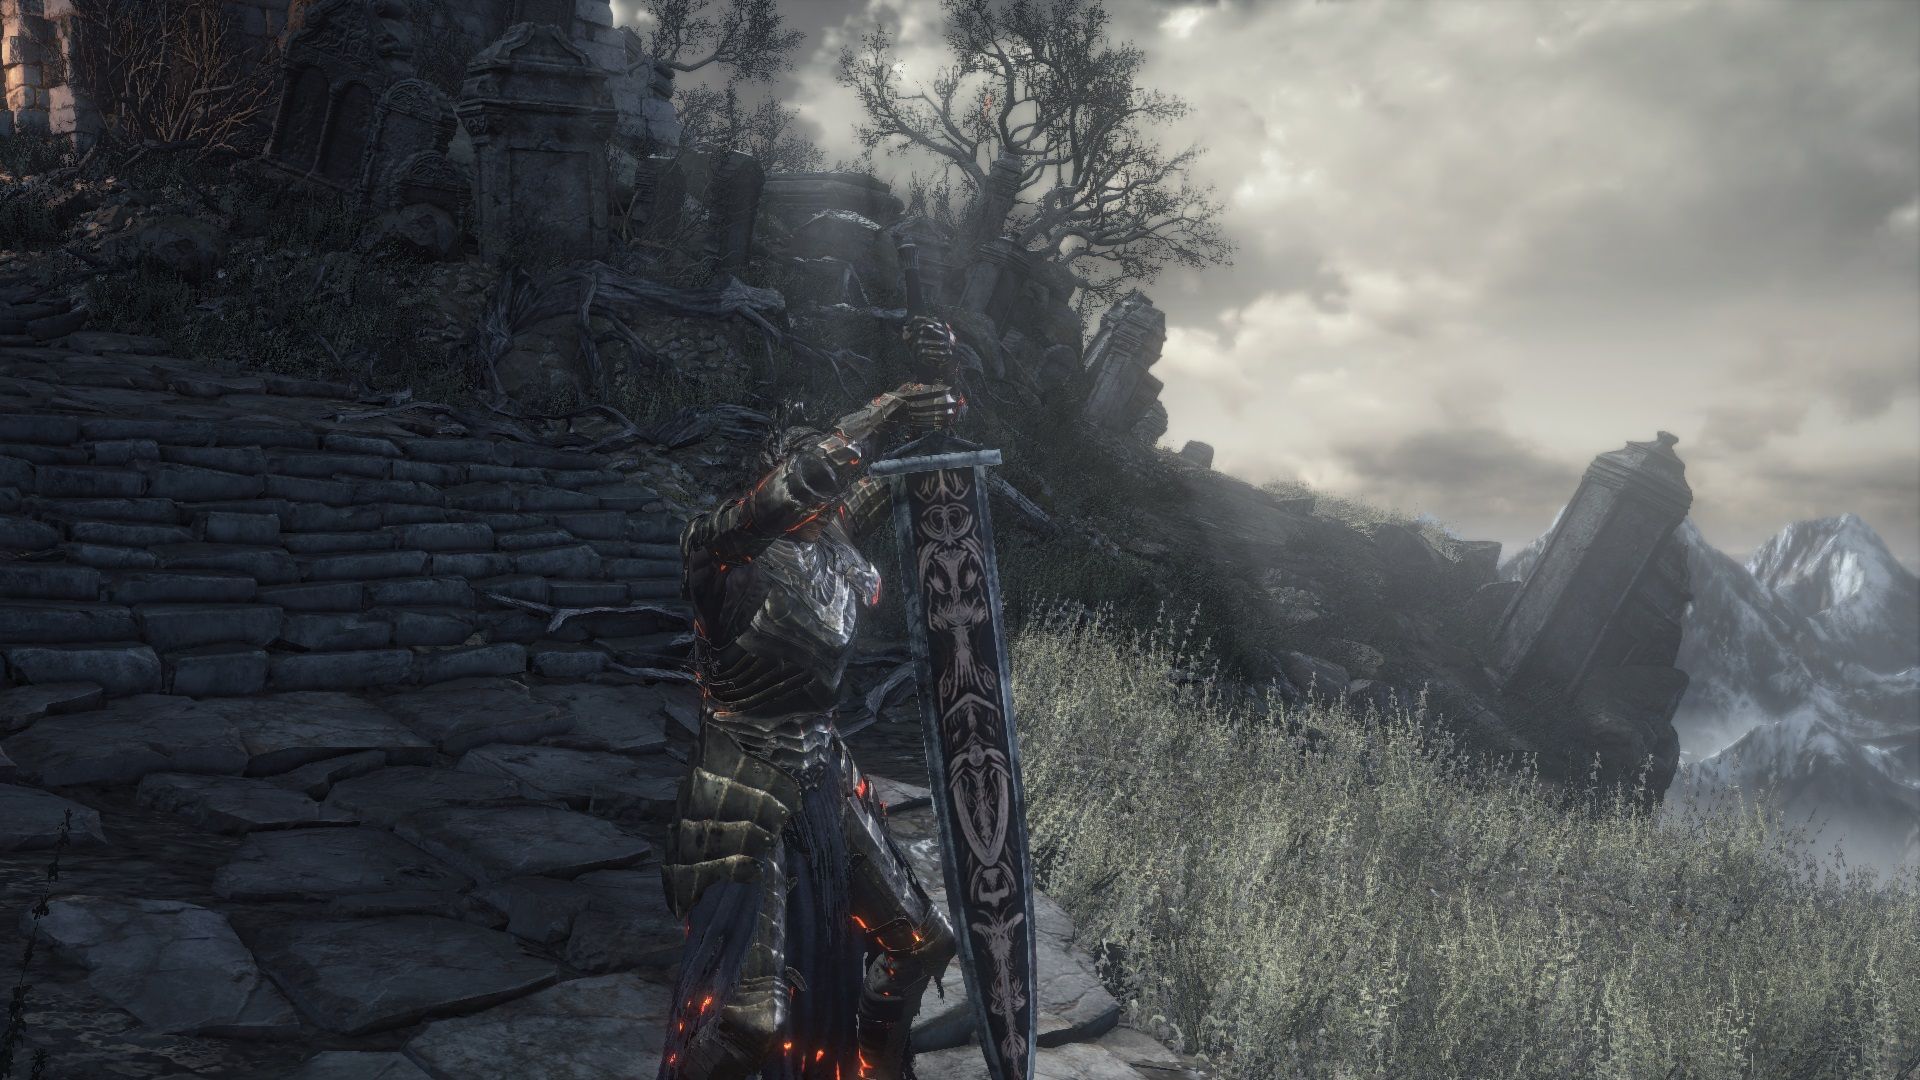 Dark Souls 3 BloodBorne Mod Brings Weapons From FromSoftware's PS4  Exclusive to PC